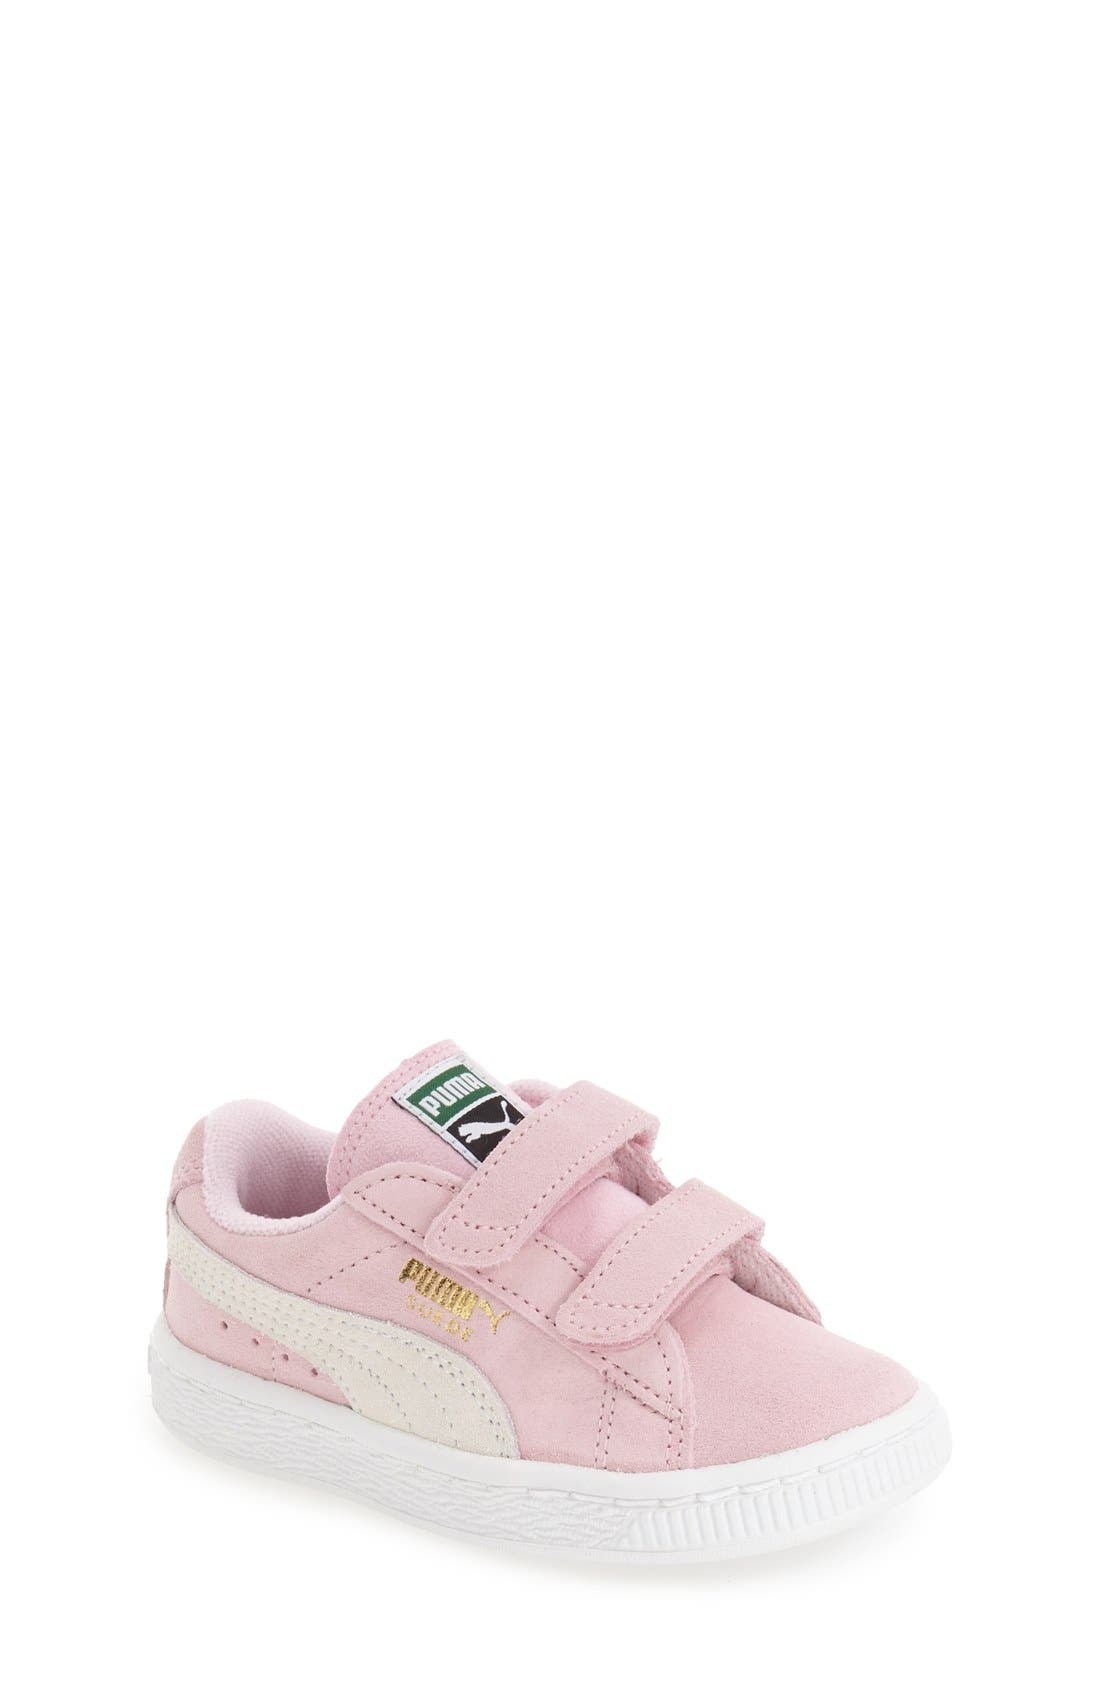 Suede Sneaker,                             Main thumbnail 1, color,                             Pink Lady/ Team Gold